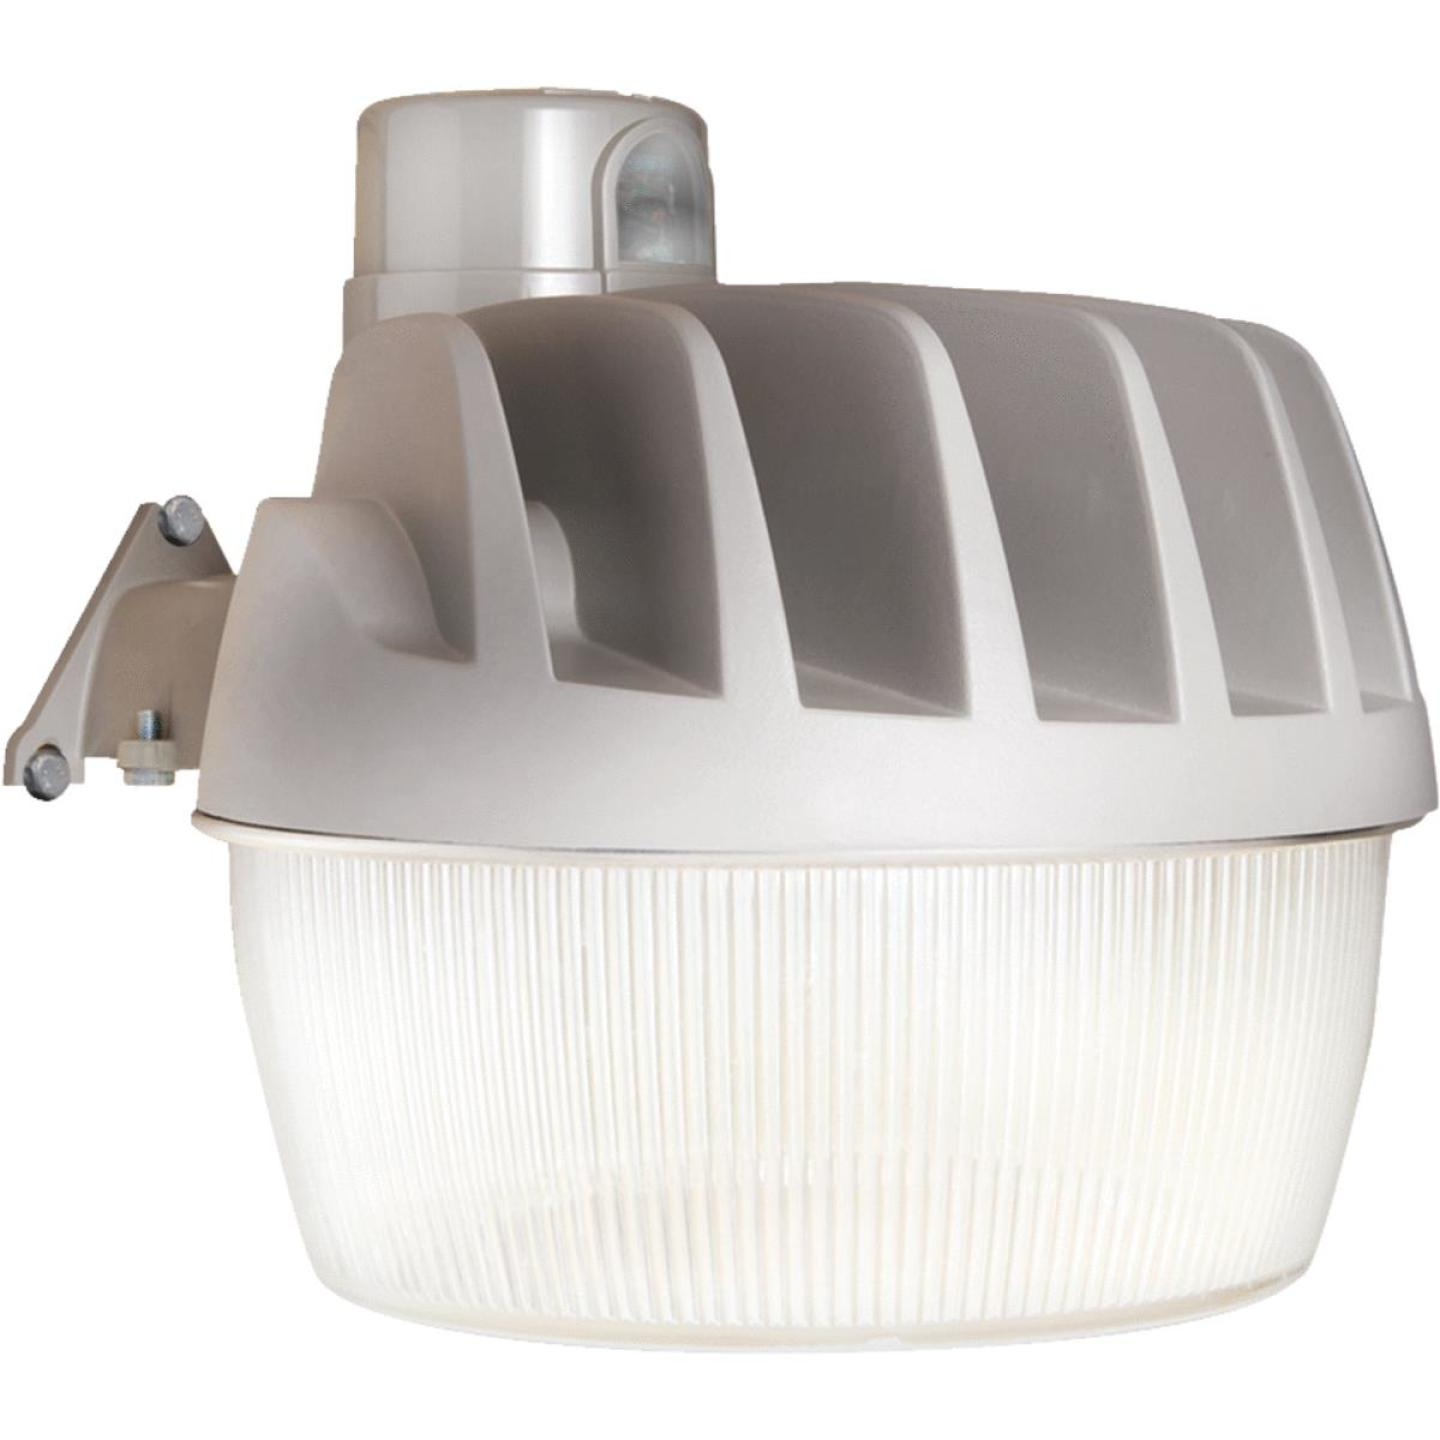 All-Pro Gray Dusk To Dawn LED Outdoor Area Light Fixture w/Twist & Lock Replaceable Photo Control